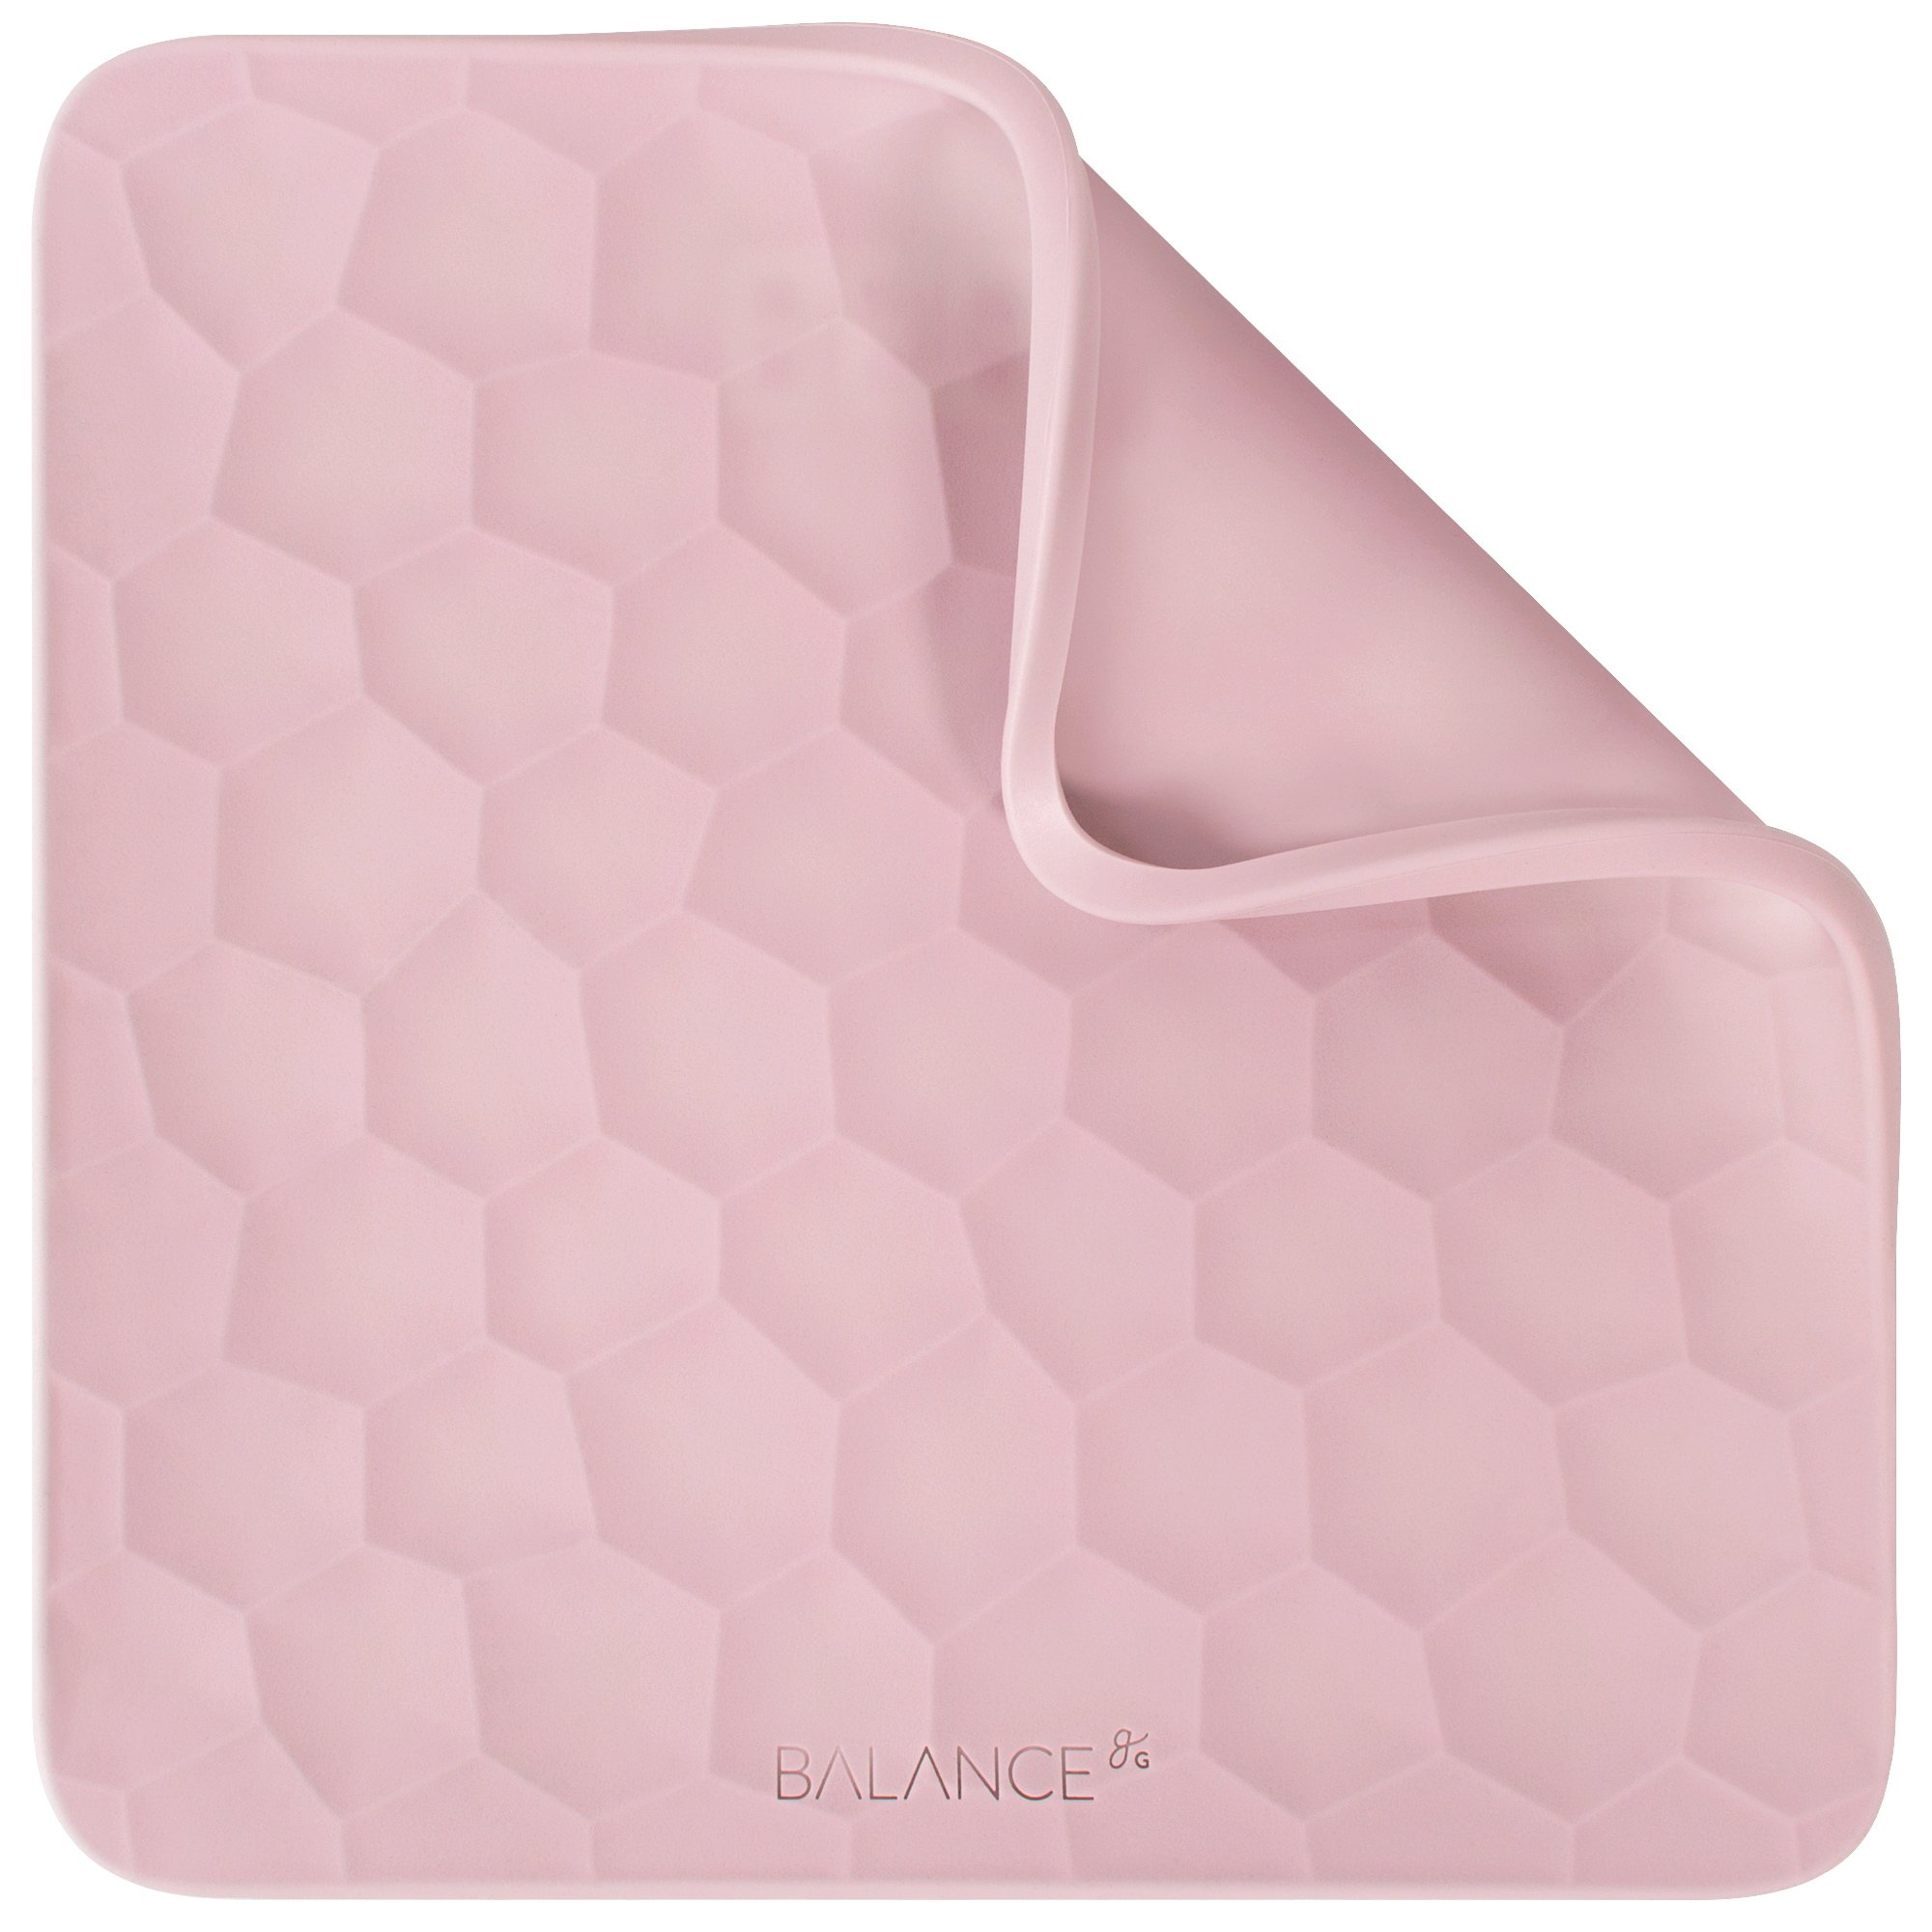 Removable Cover for Pink Bathroom Scale by GreaterGoods Silicone Scale, Rose Quartz Pink Color, Must Add Scale + TOP to Cart to Complete Purchase, Scale NOT Included (Top Only)